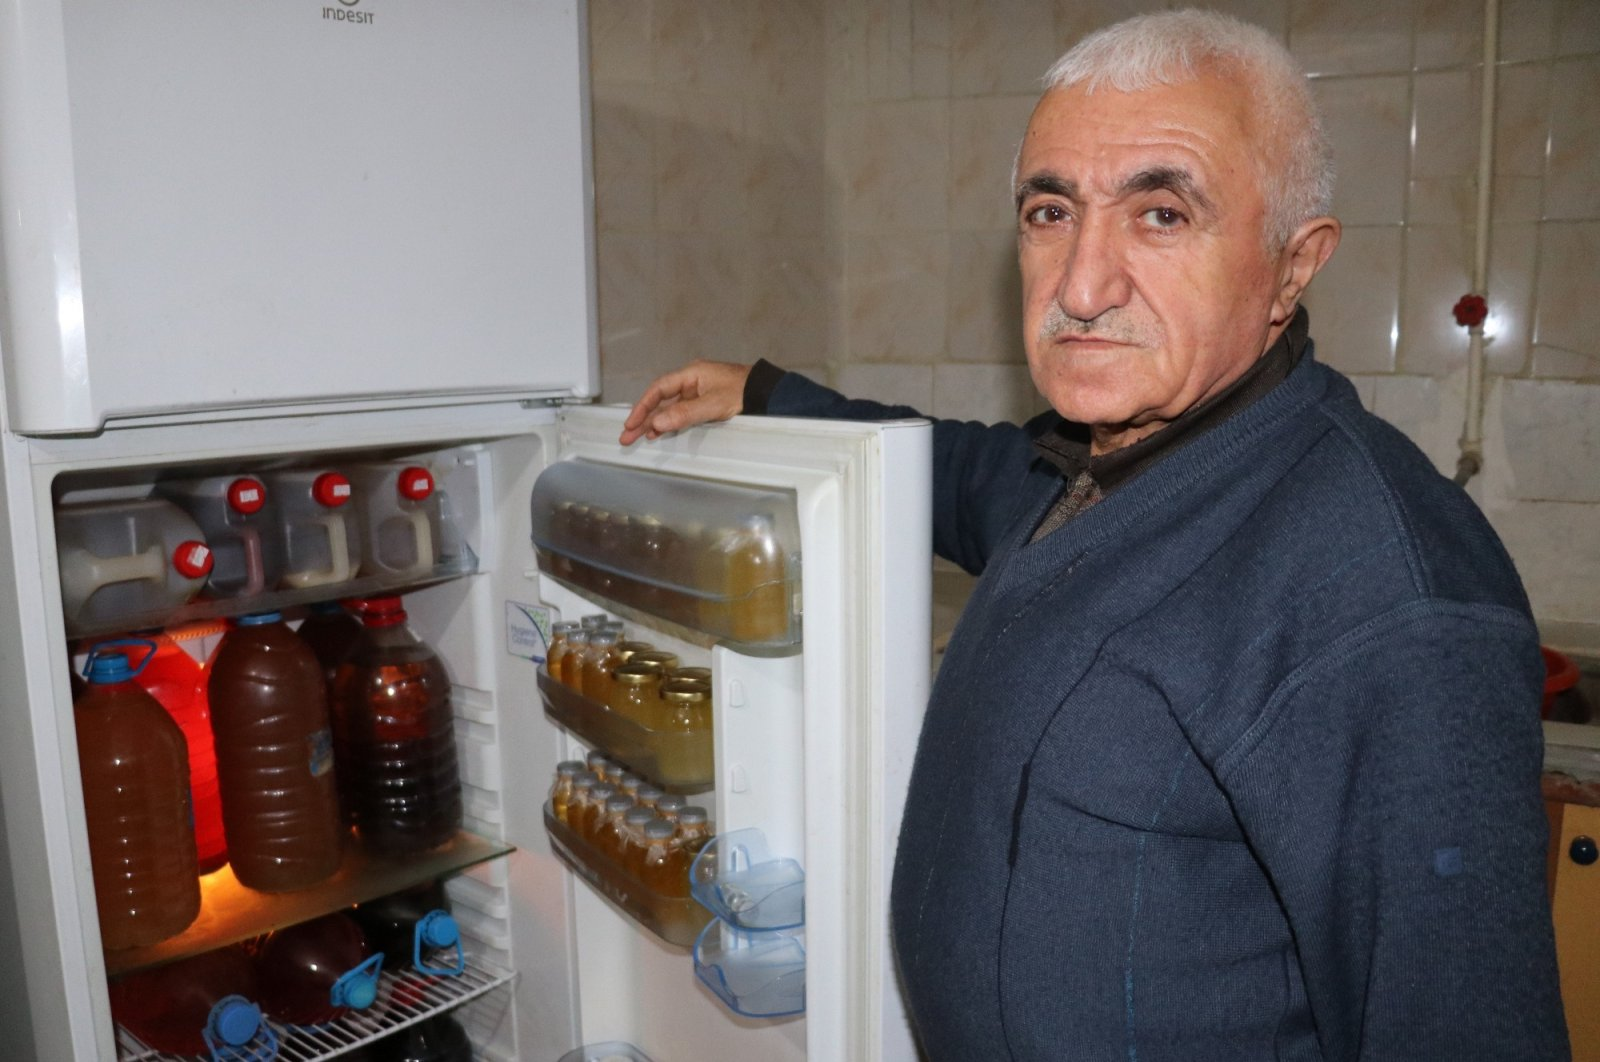 Mehmet Kasım Alageyik previously told reporters that he came up with a cure for the new coronavirus, Van, March 2, 2020. (İHA Photo)